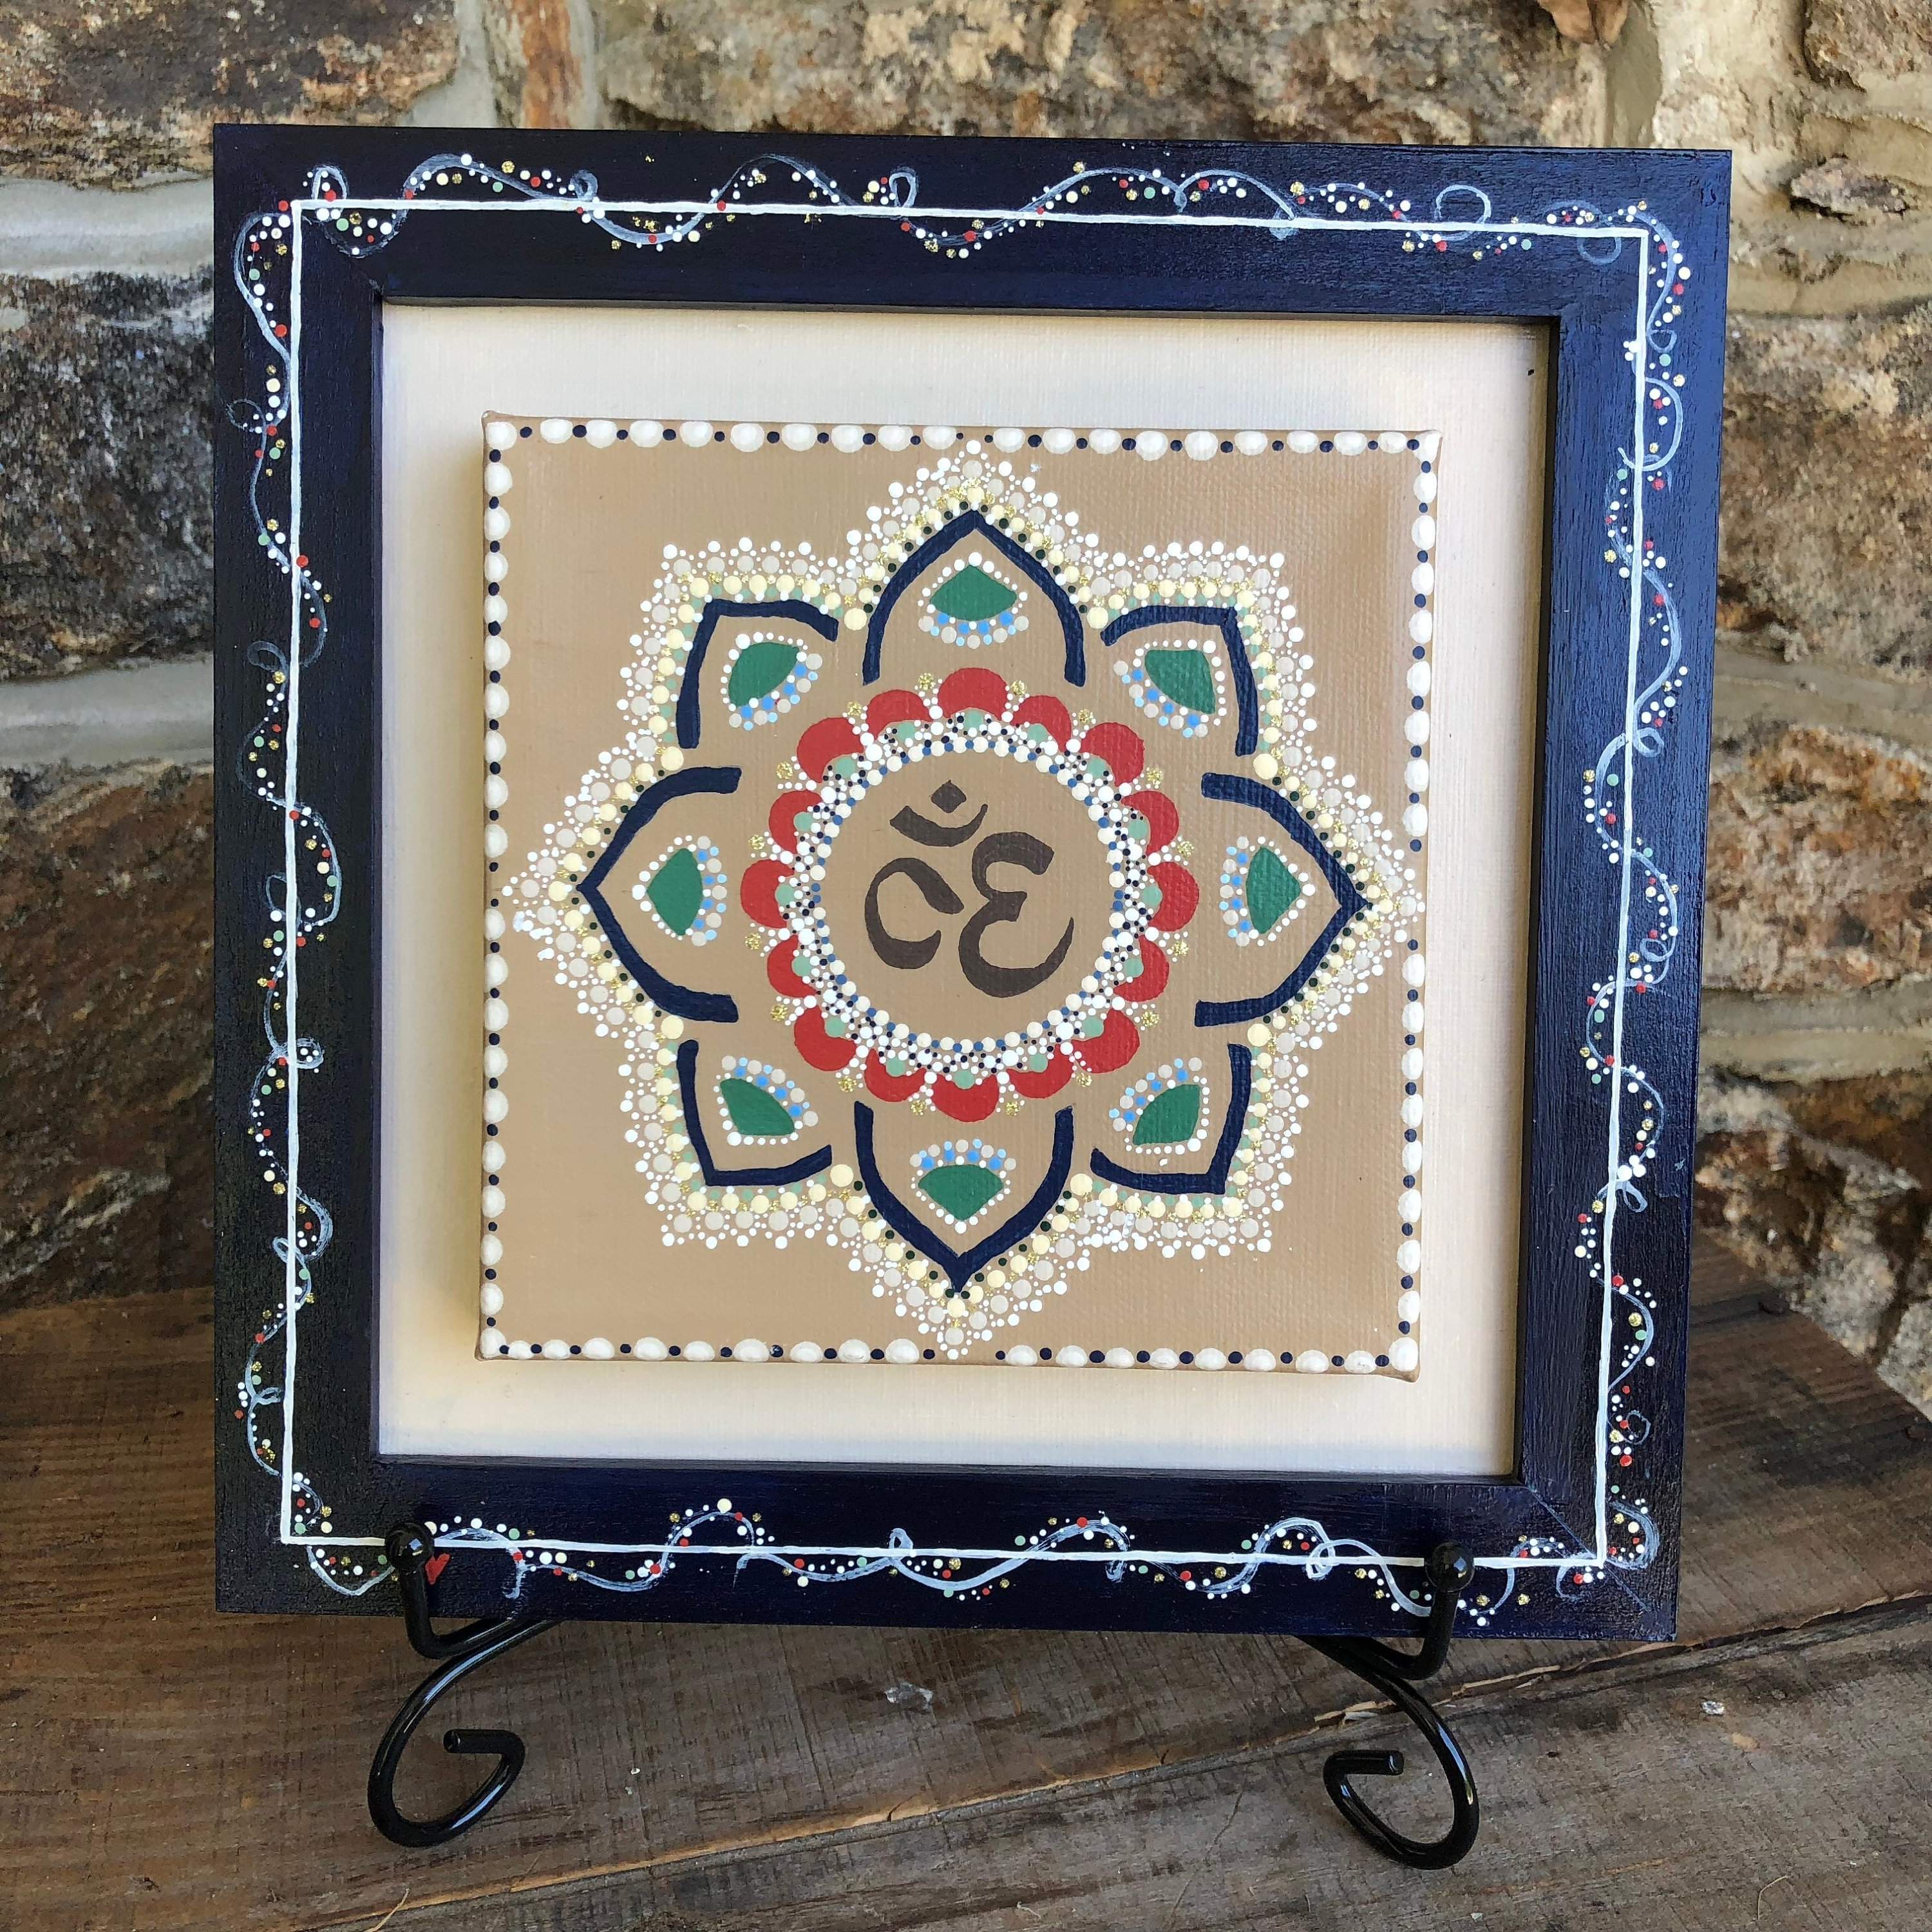 Inspirational Wall Art Canvas Regarding Most Recently Released Om Dotted Mandala Canvas Yoga Wall Art, Meditation Gift For Her (View 14 of 15)